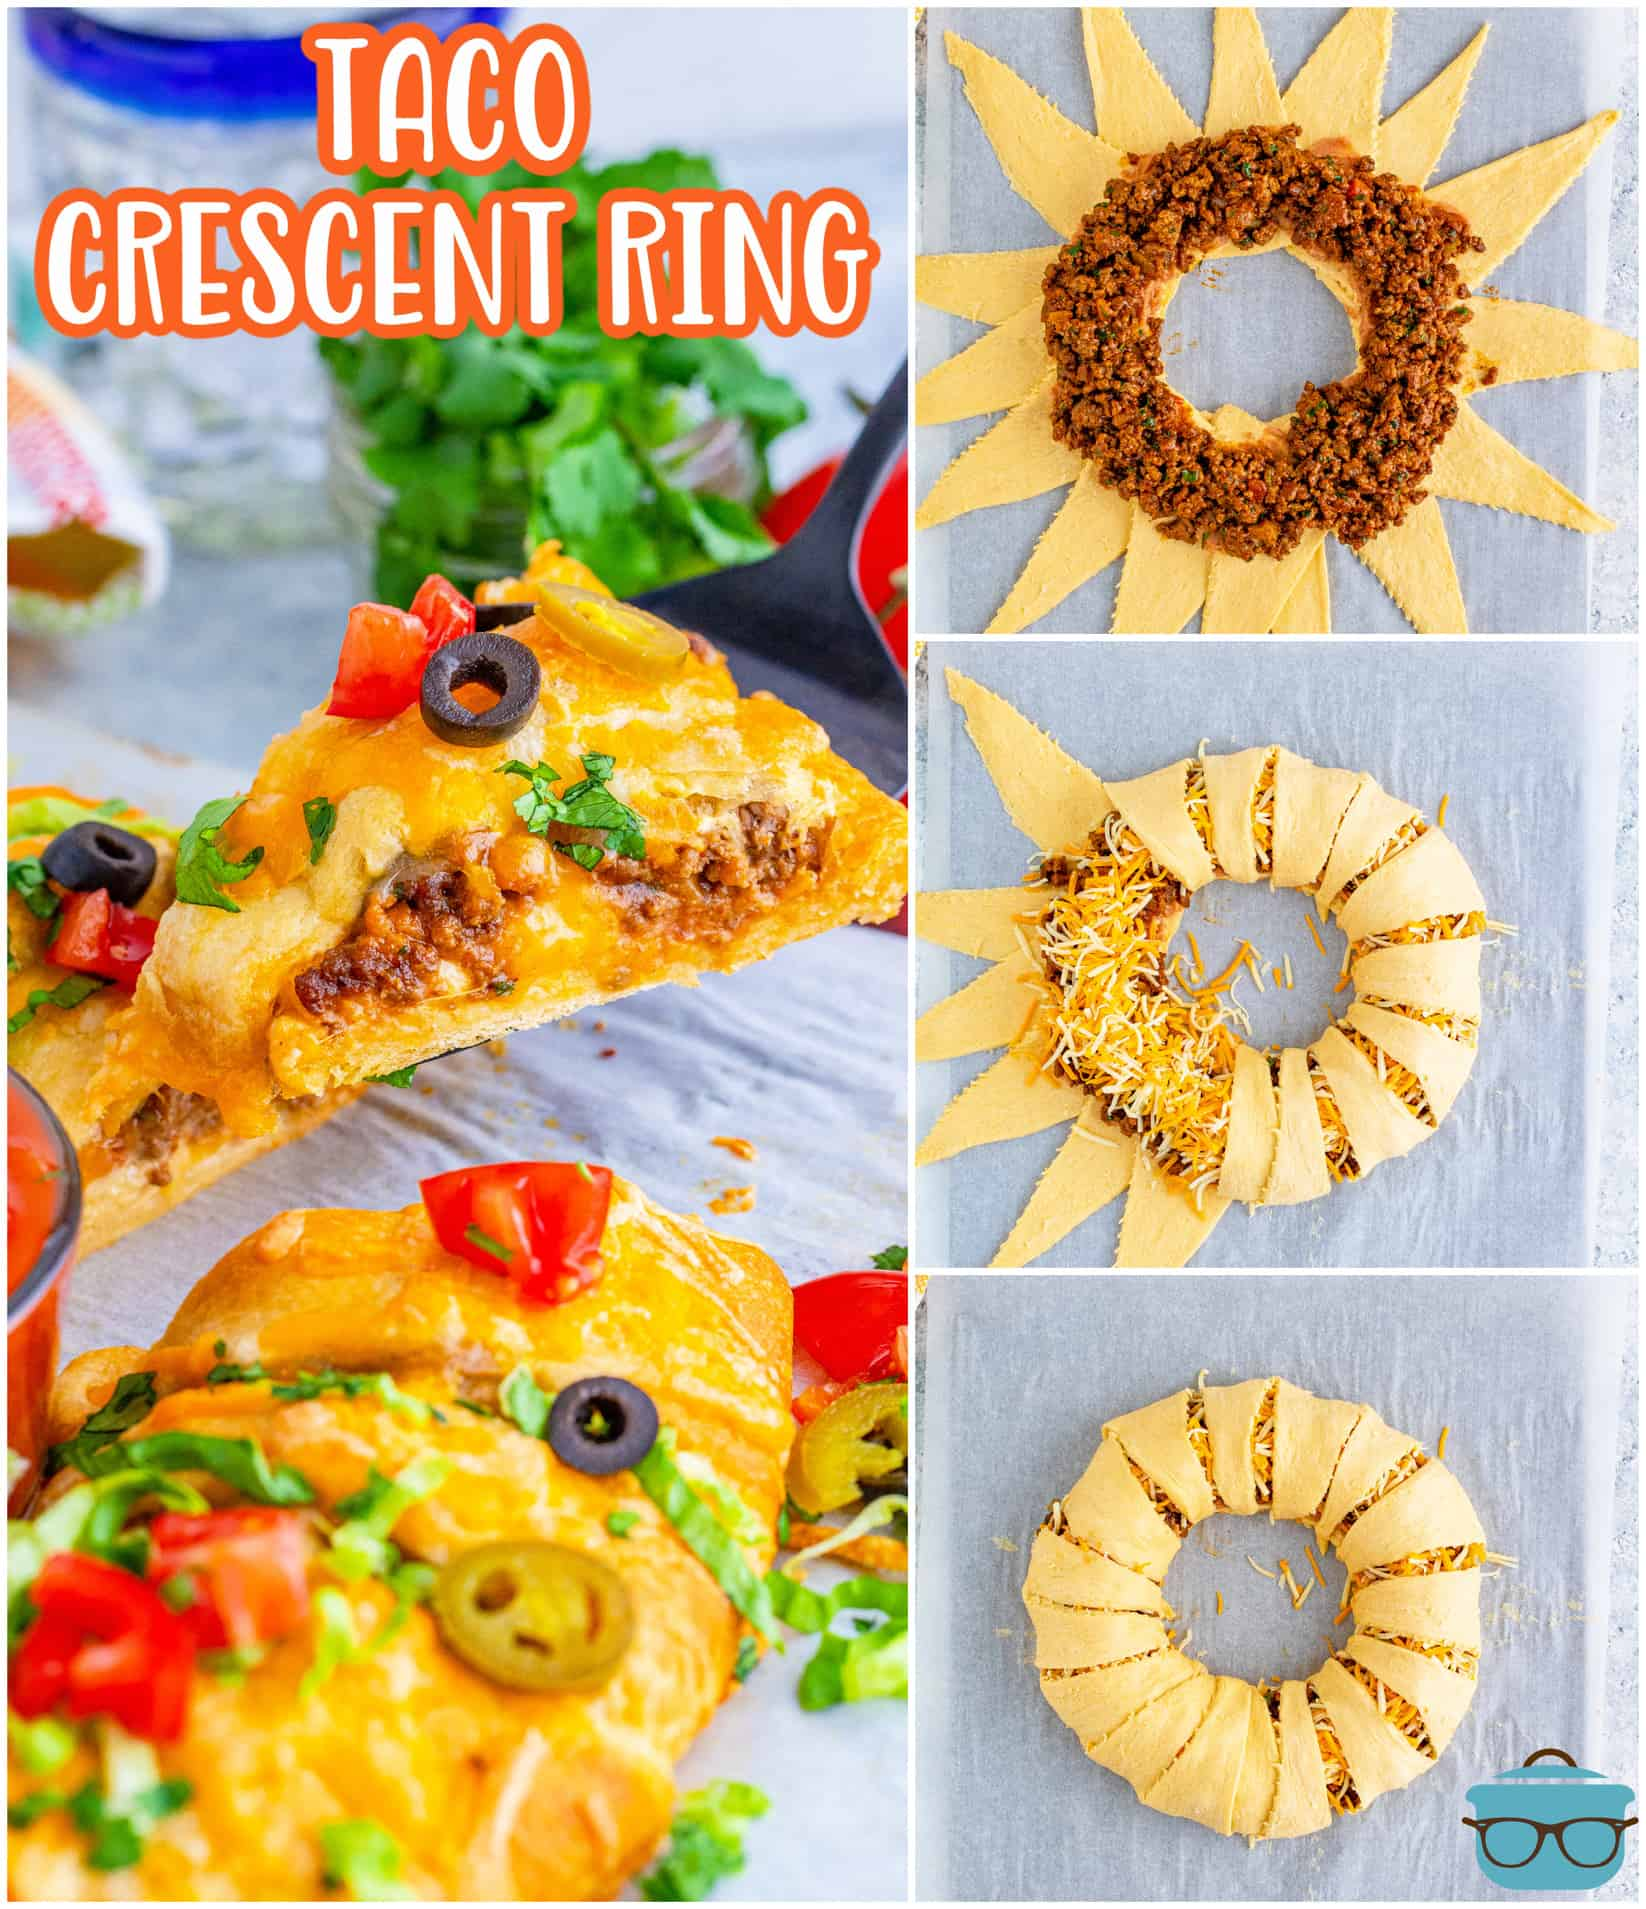 This Taco Crescent Ring is so versatile andalways a favoritewith friends and family! It uses simple ingredients all wrapped up in crescent rolls making it a fun appetizer or main dish!